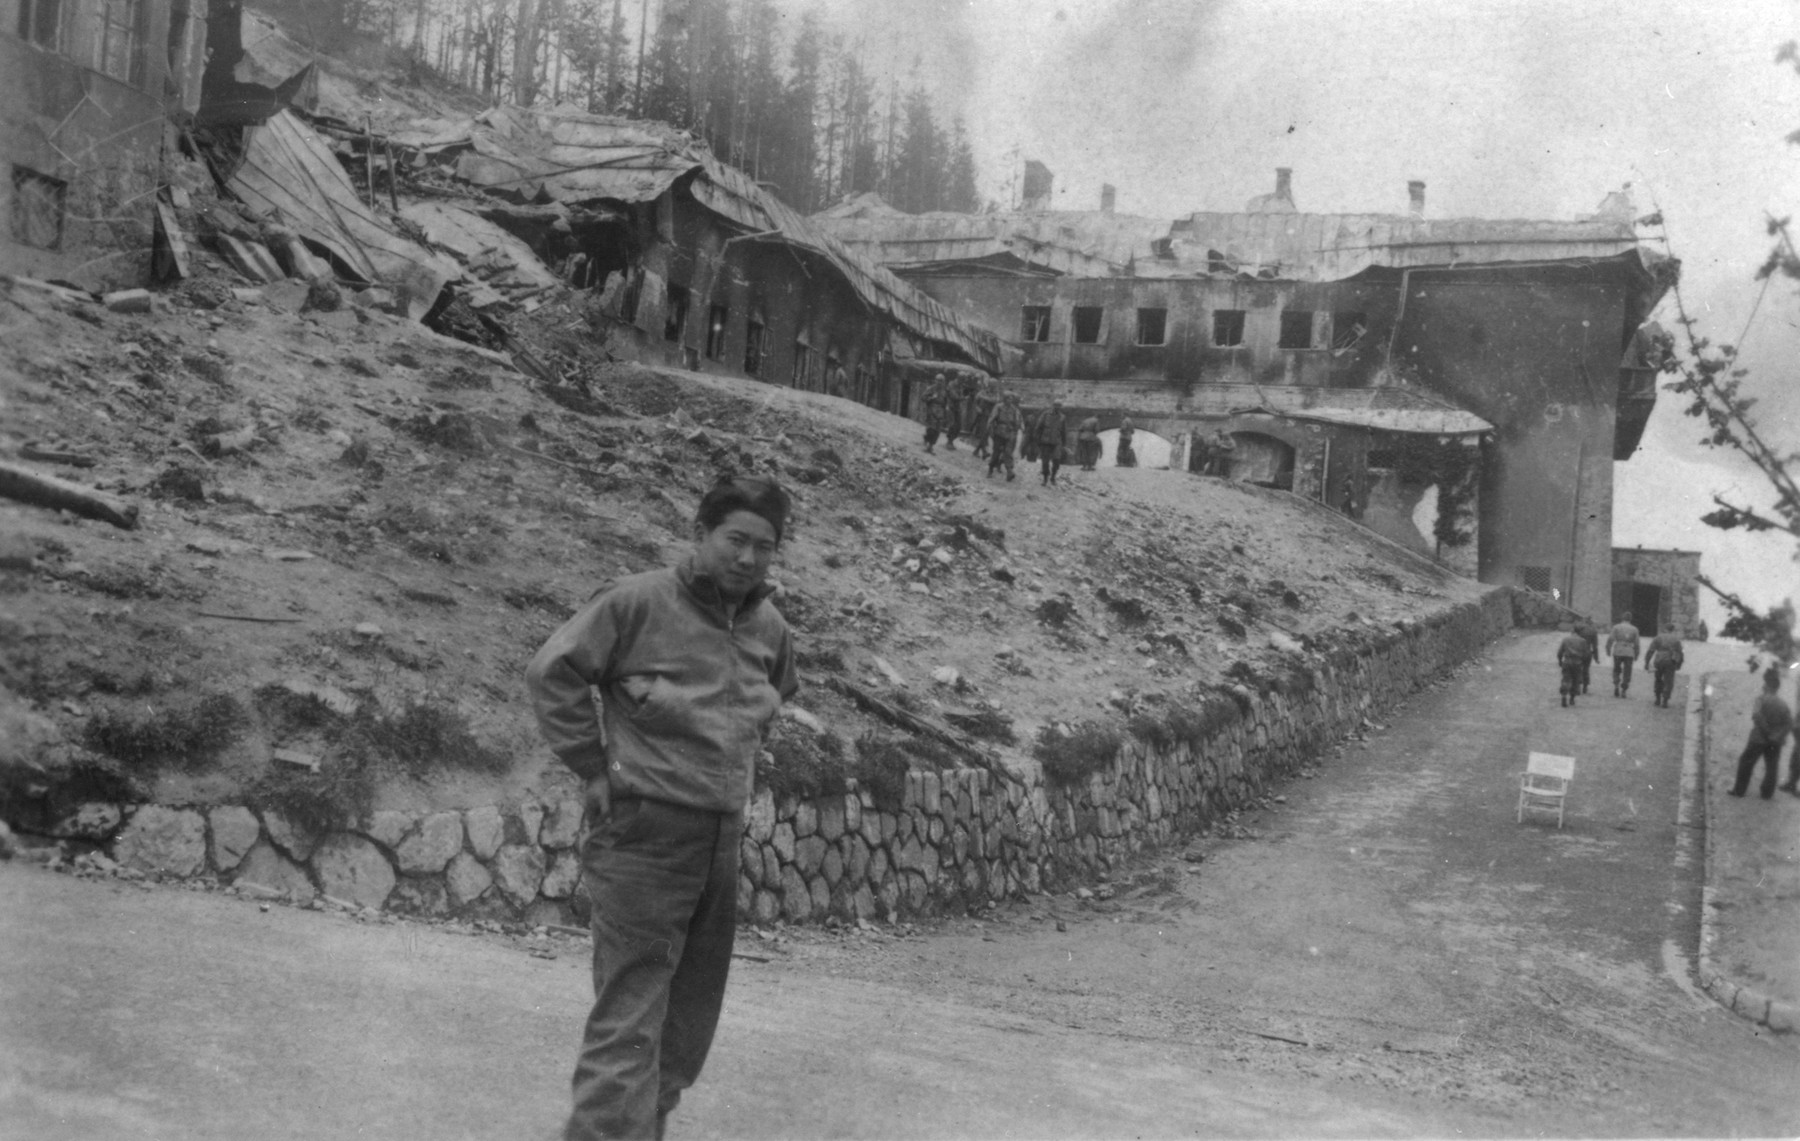 A Japanese-American soldier poses outside the destroyed Berghof, Hitler's mountain retreat in the Bavarian Alps.